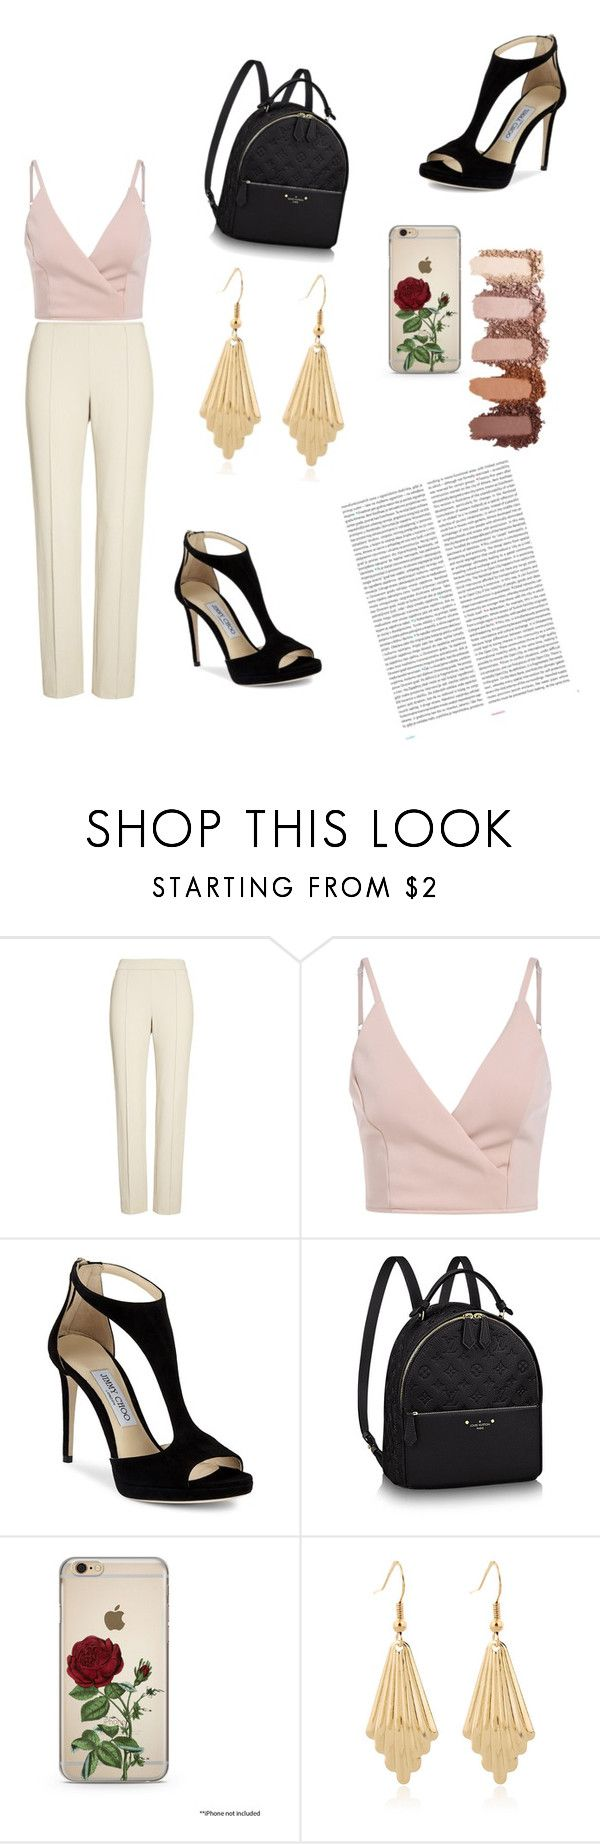 """""""happy hour"""" by blancau ❤ liked on Polyvore featuring St. John, Jimmy Choo and Oris"""